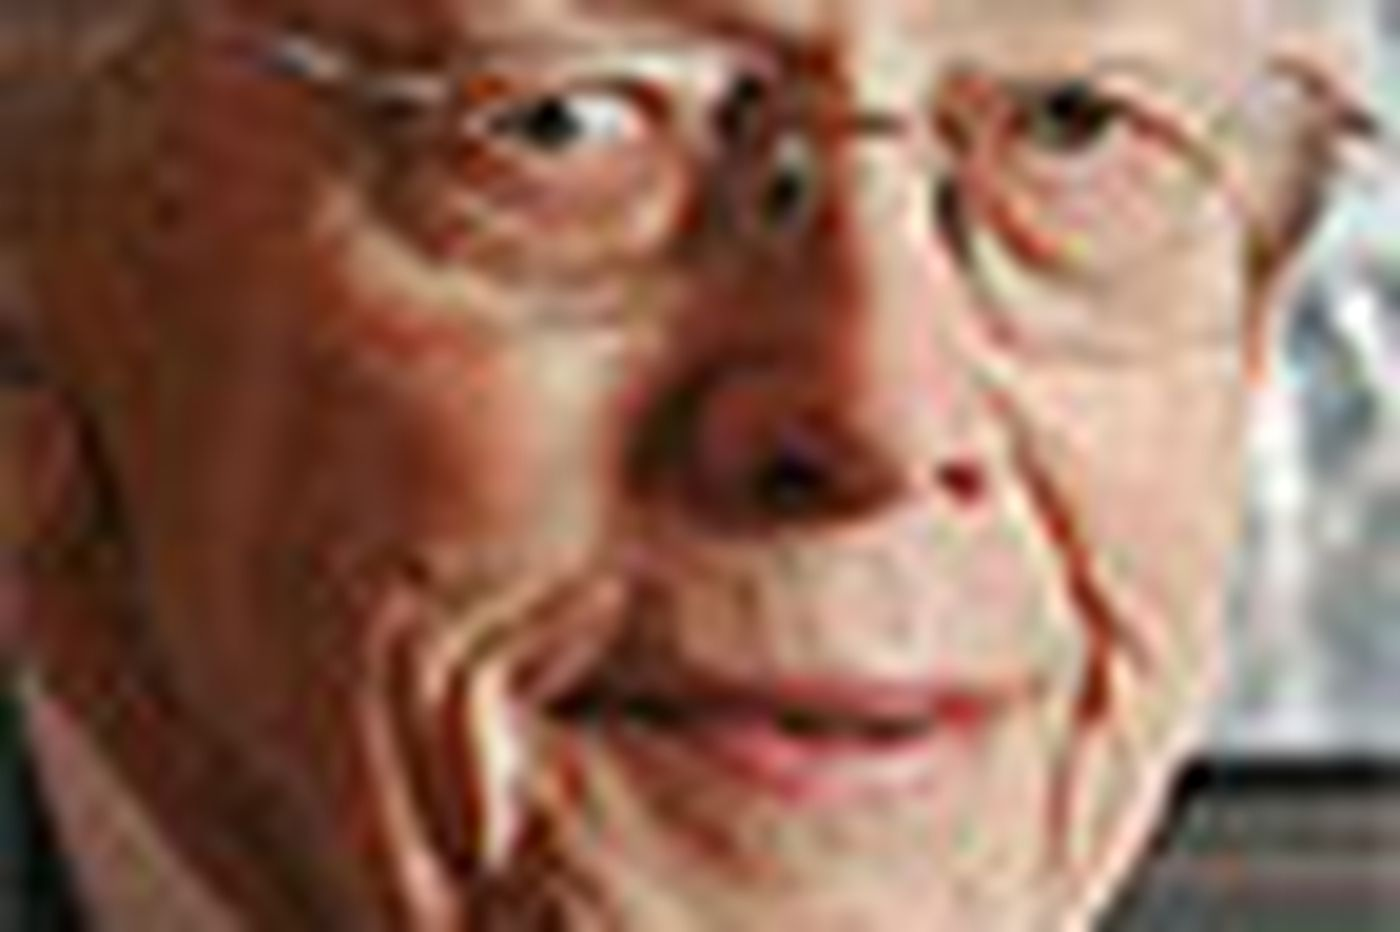 Clyde Summers, 91, expert on law and labor